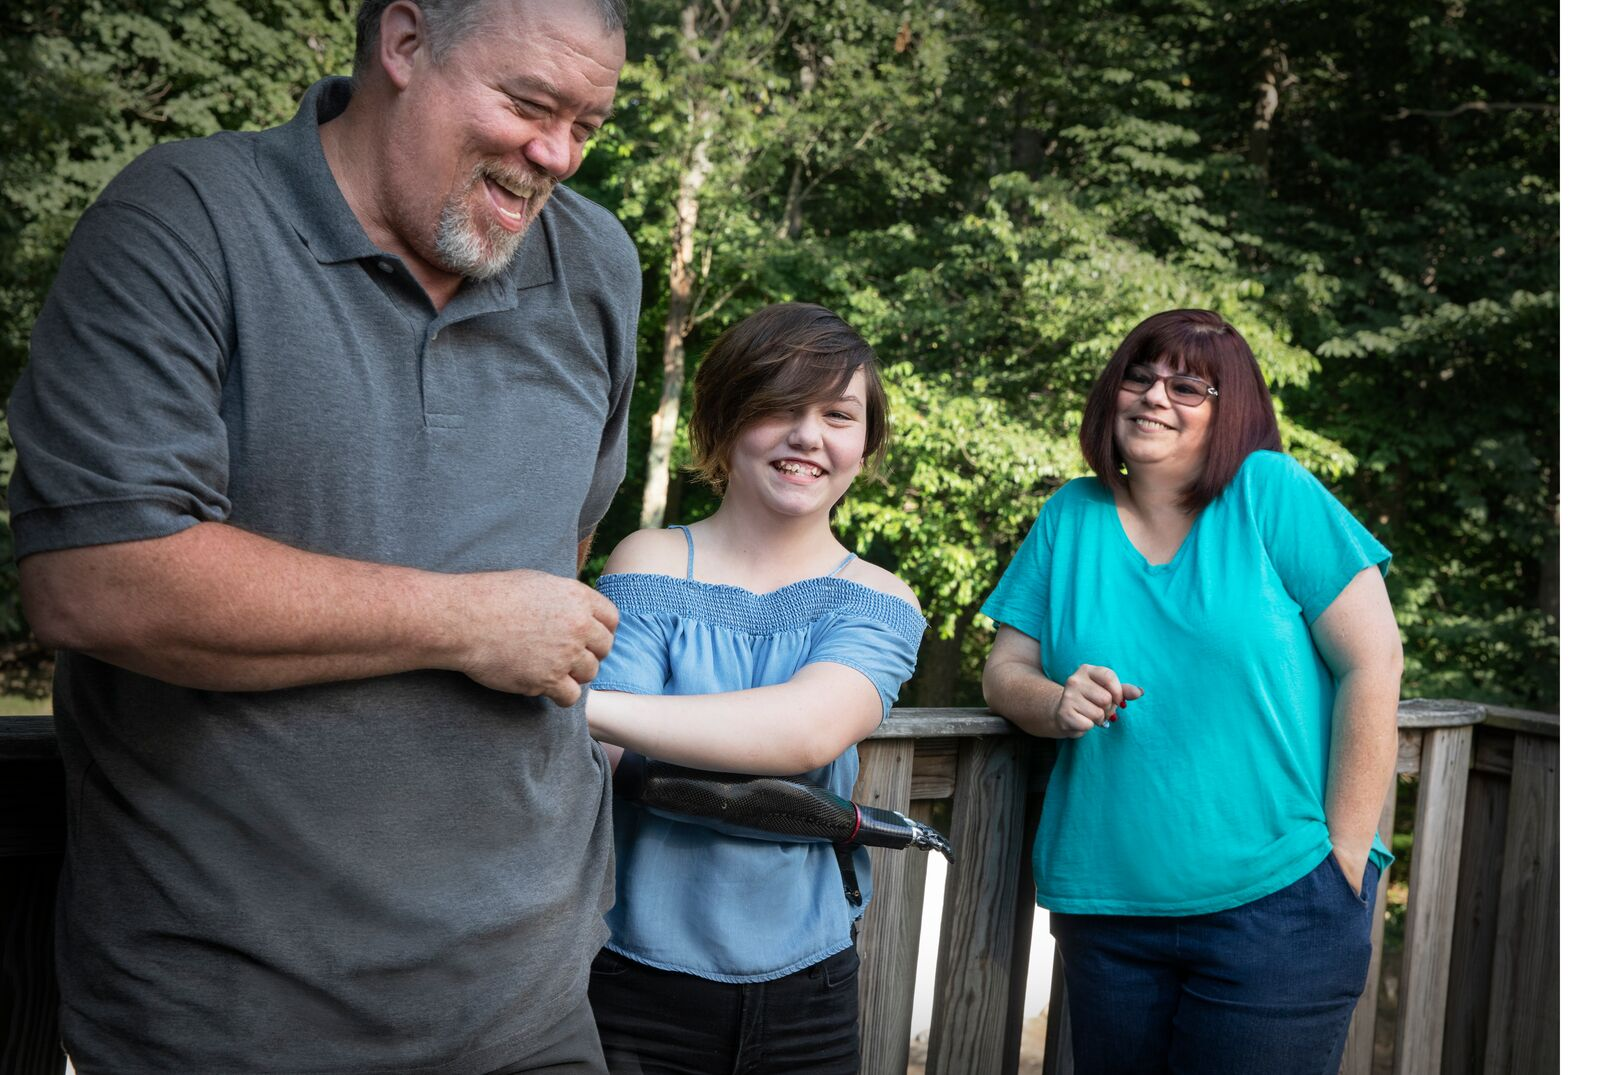 Teenage girl with a bionic arm, laughing on her porch with her mother and father